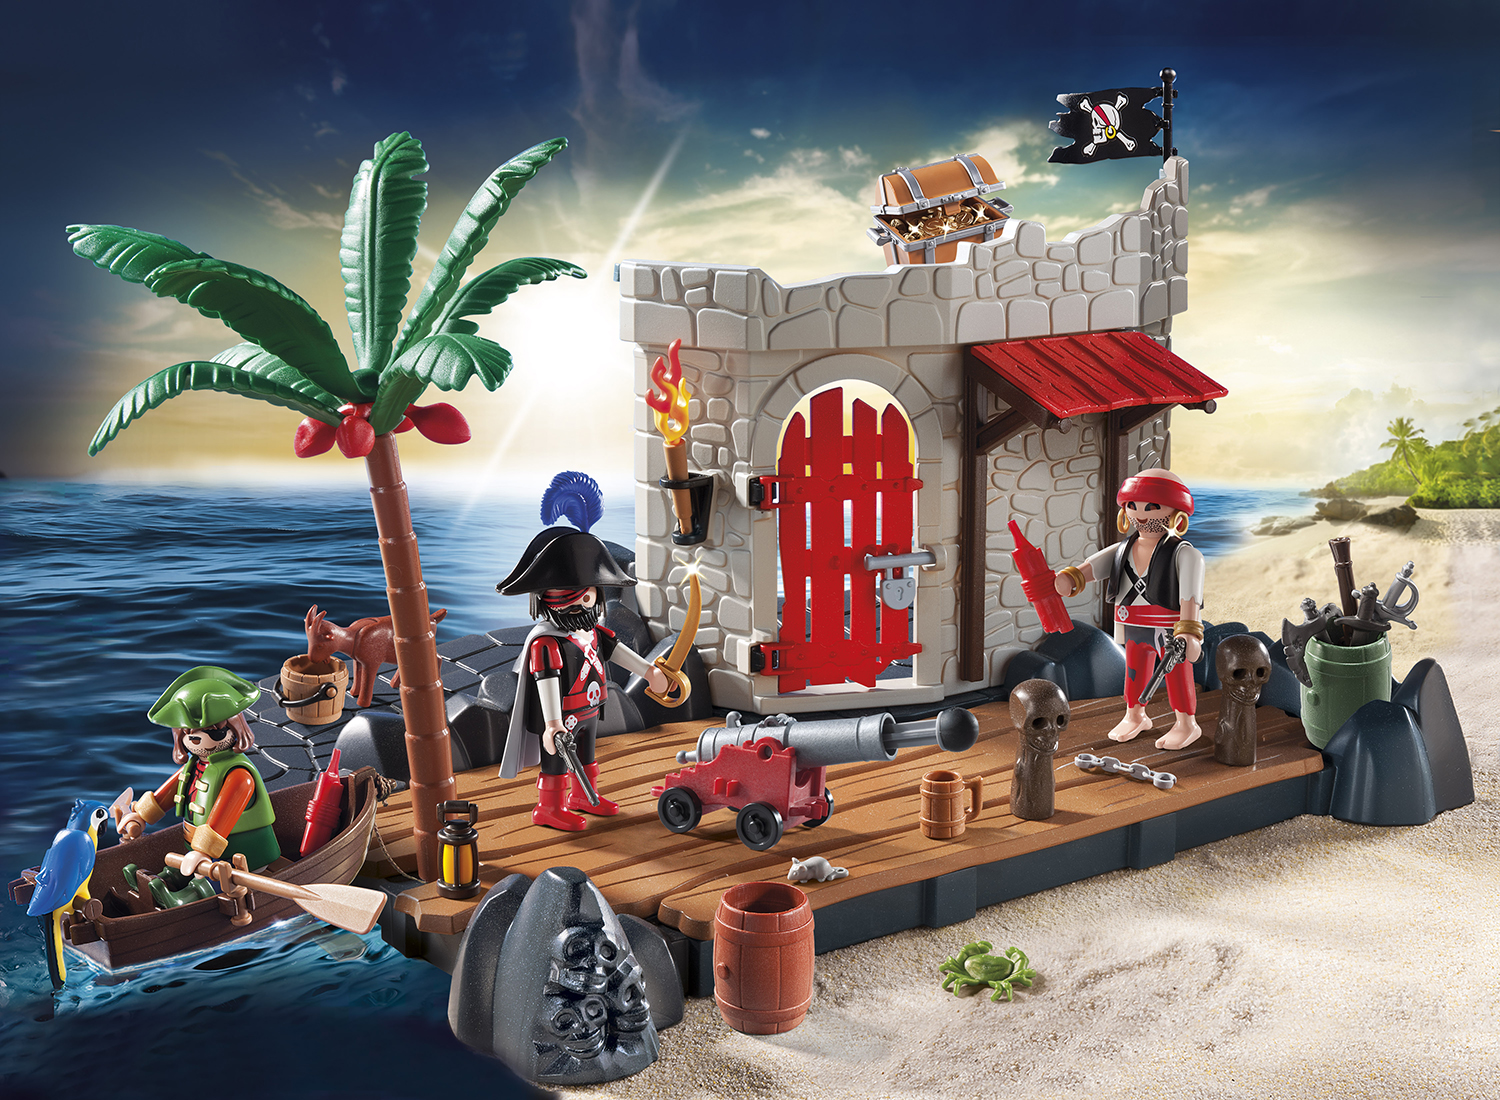 PLAYMOBIL_6146_Pirate Fort SuperSet